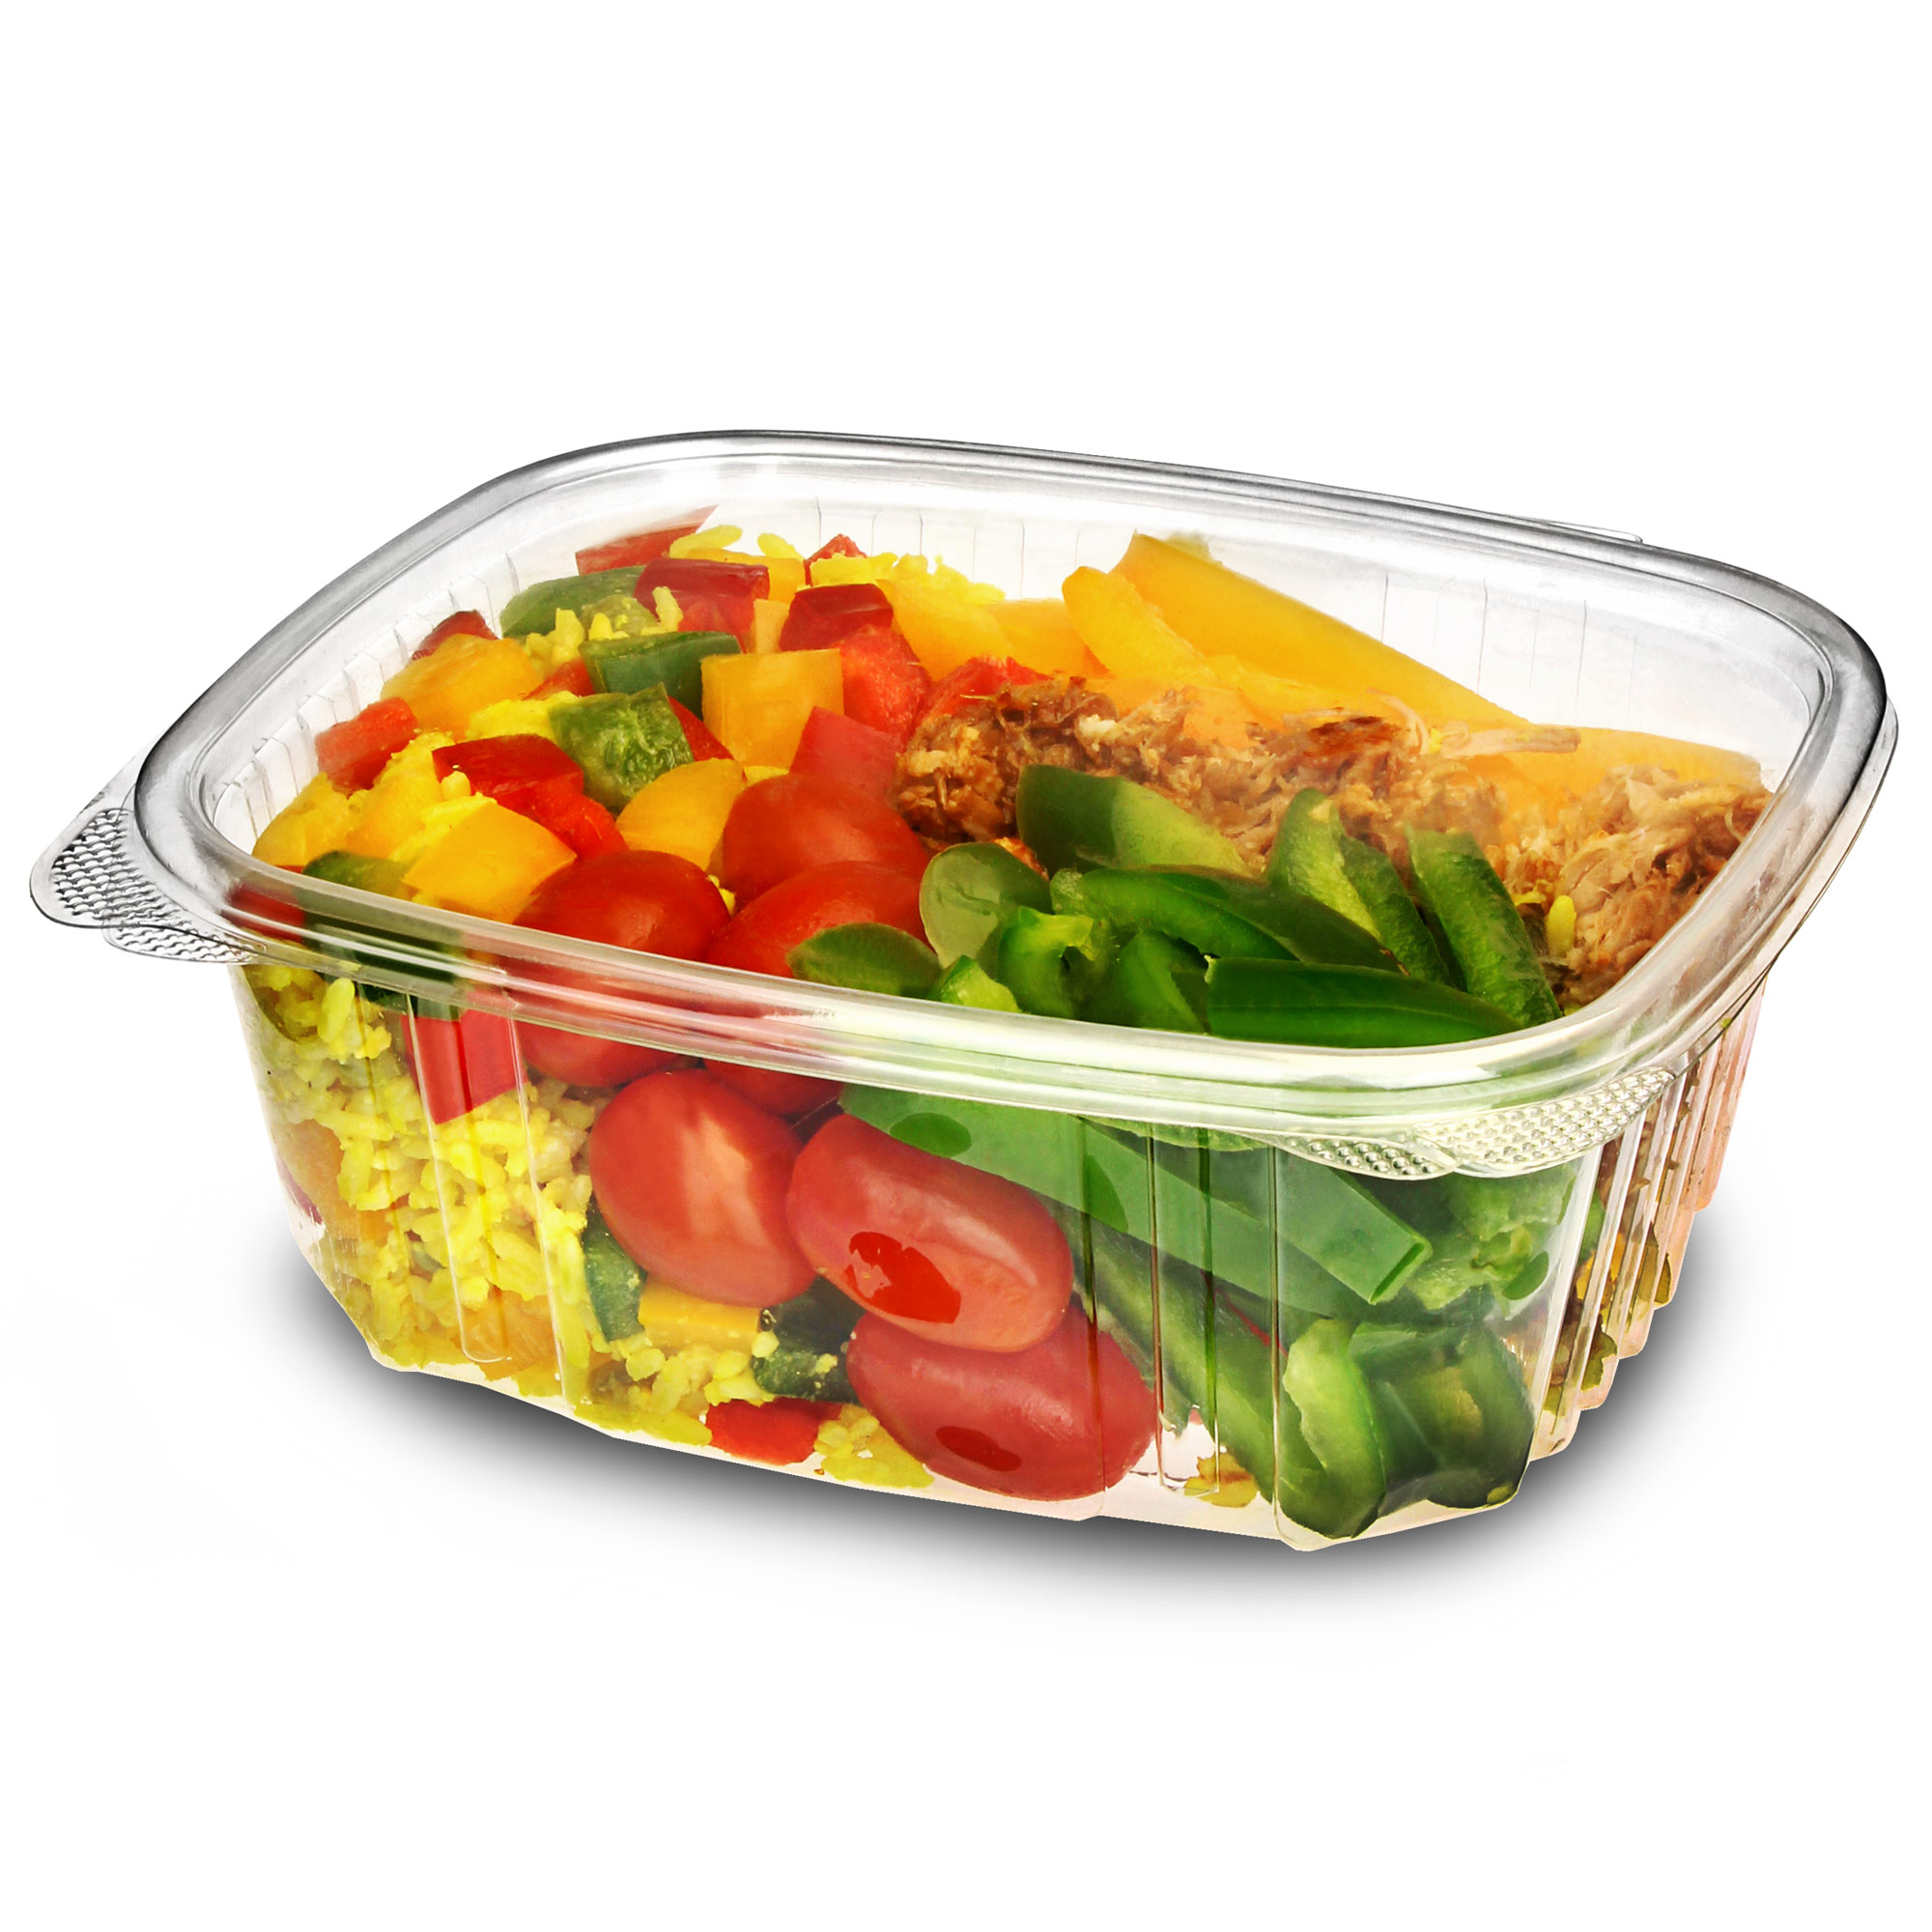 Disposable hinged salad container 32oz 900ml drinkstuff for Decor 900ml container